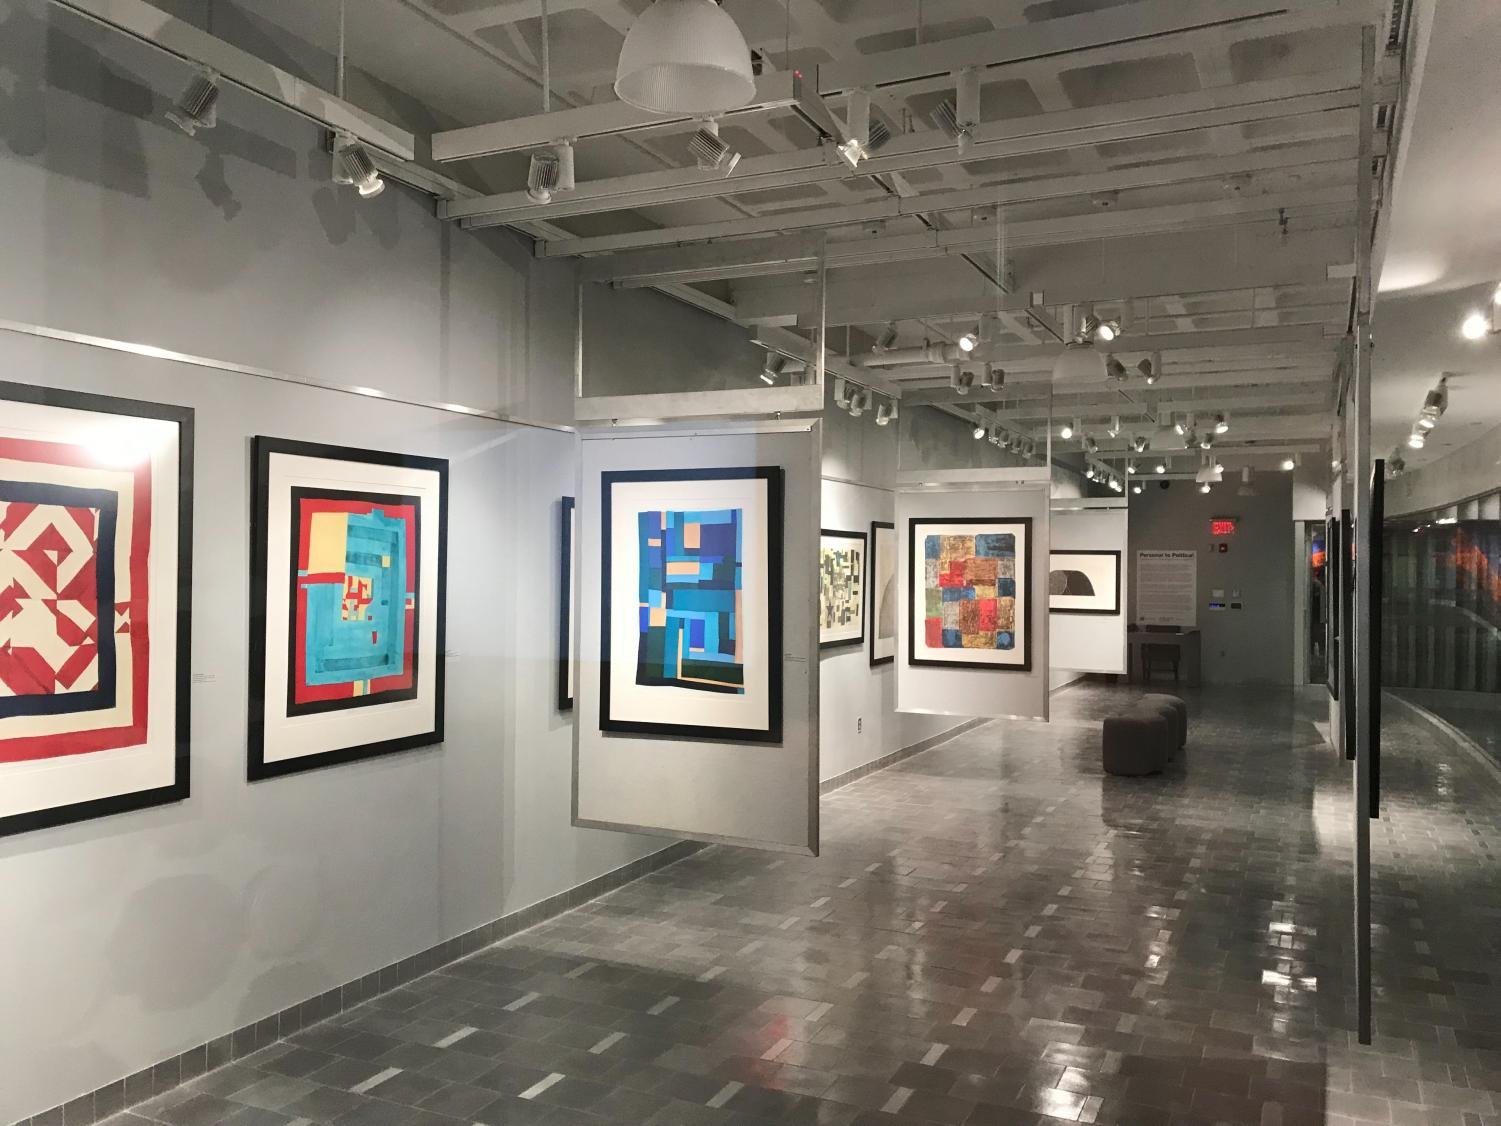 Gallery 360 displays the